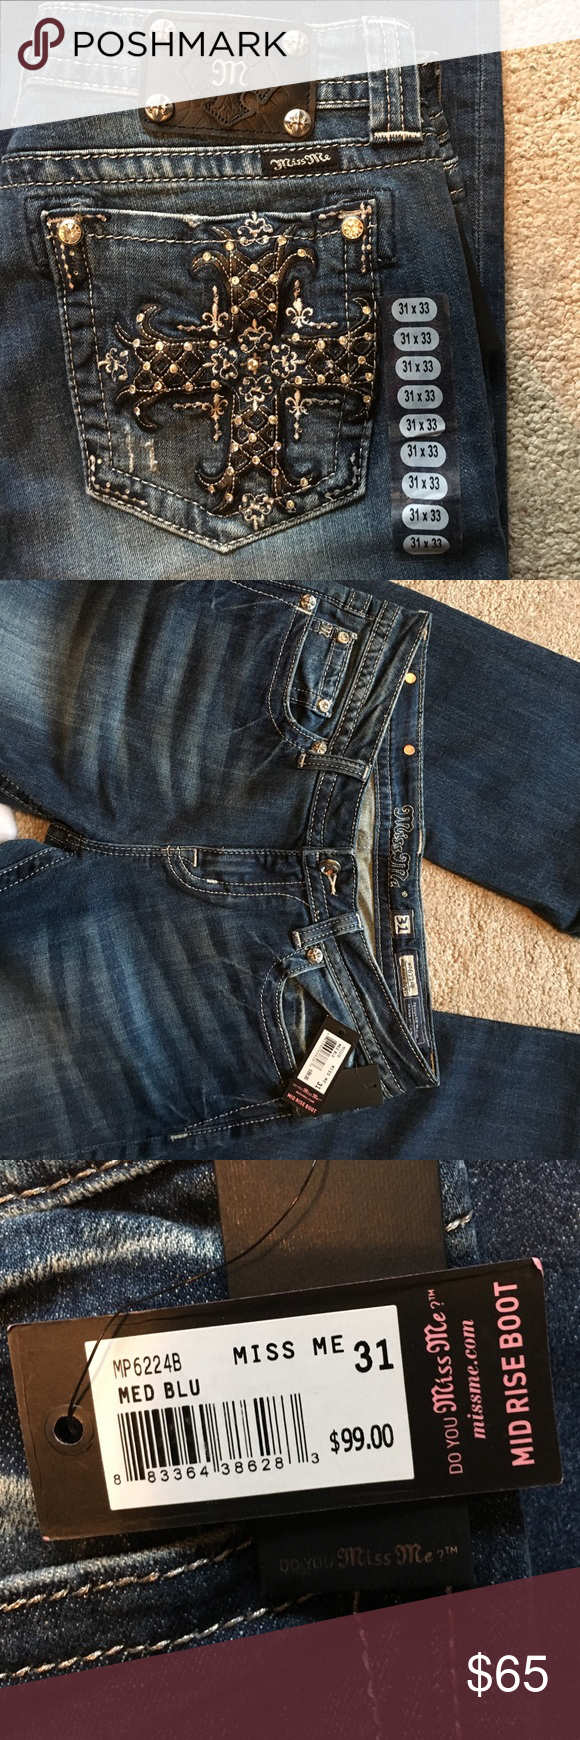 Miss Me Jeans Beautiful Miss Me jeans! New with tags. Perfect for a girls night out! Miss Me Jeans Boot Cut